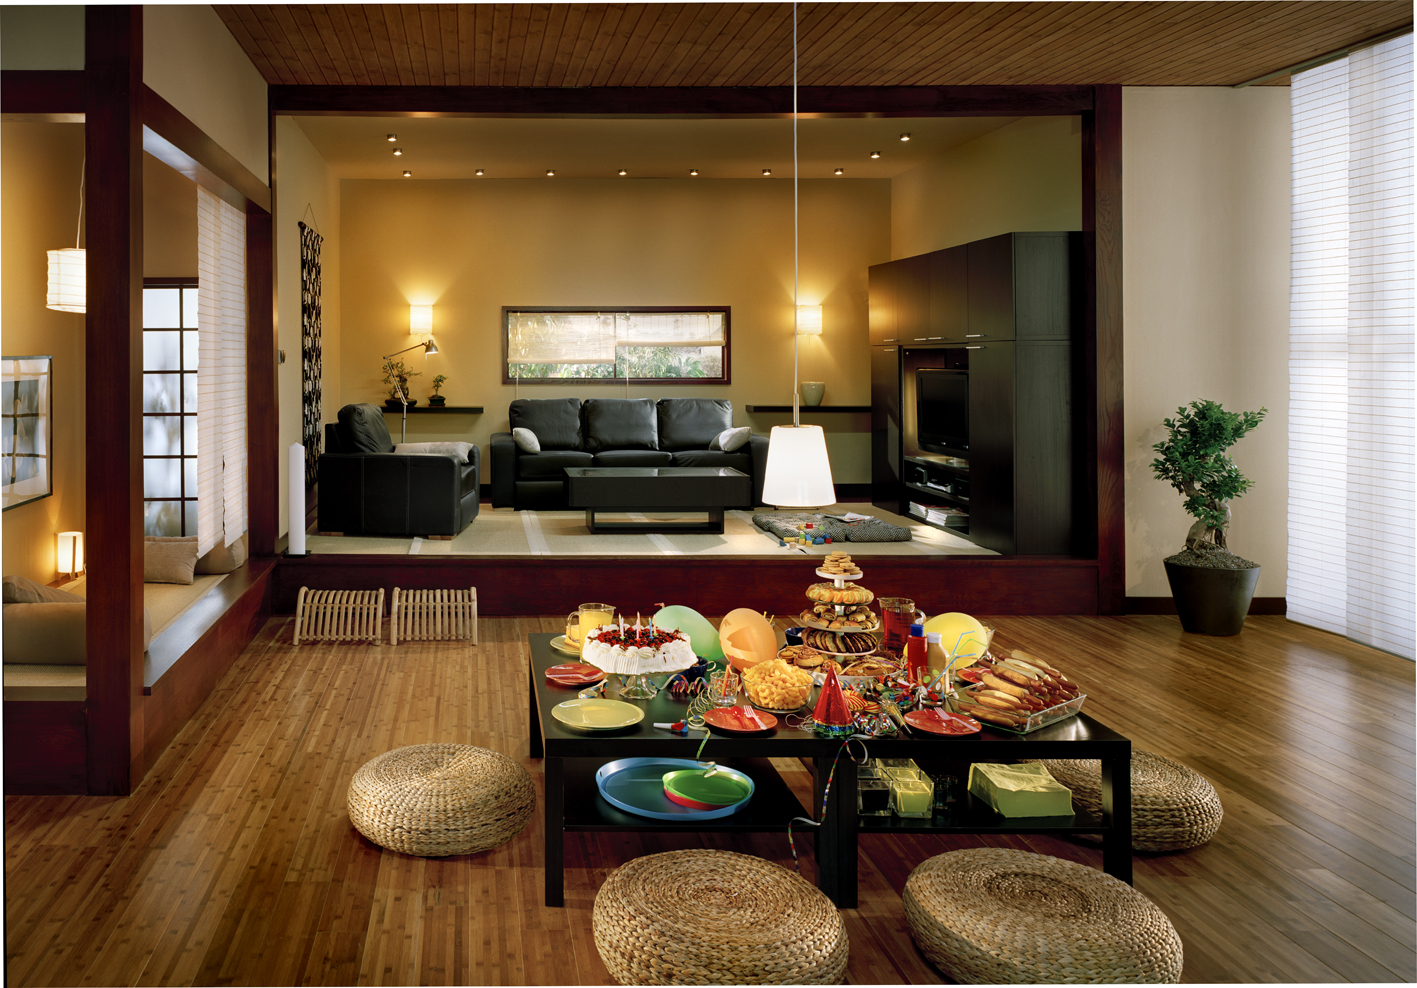 Modern Retro Southern Dining Room (Image 4 of 10)